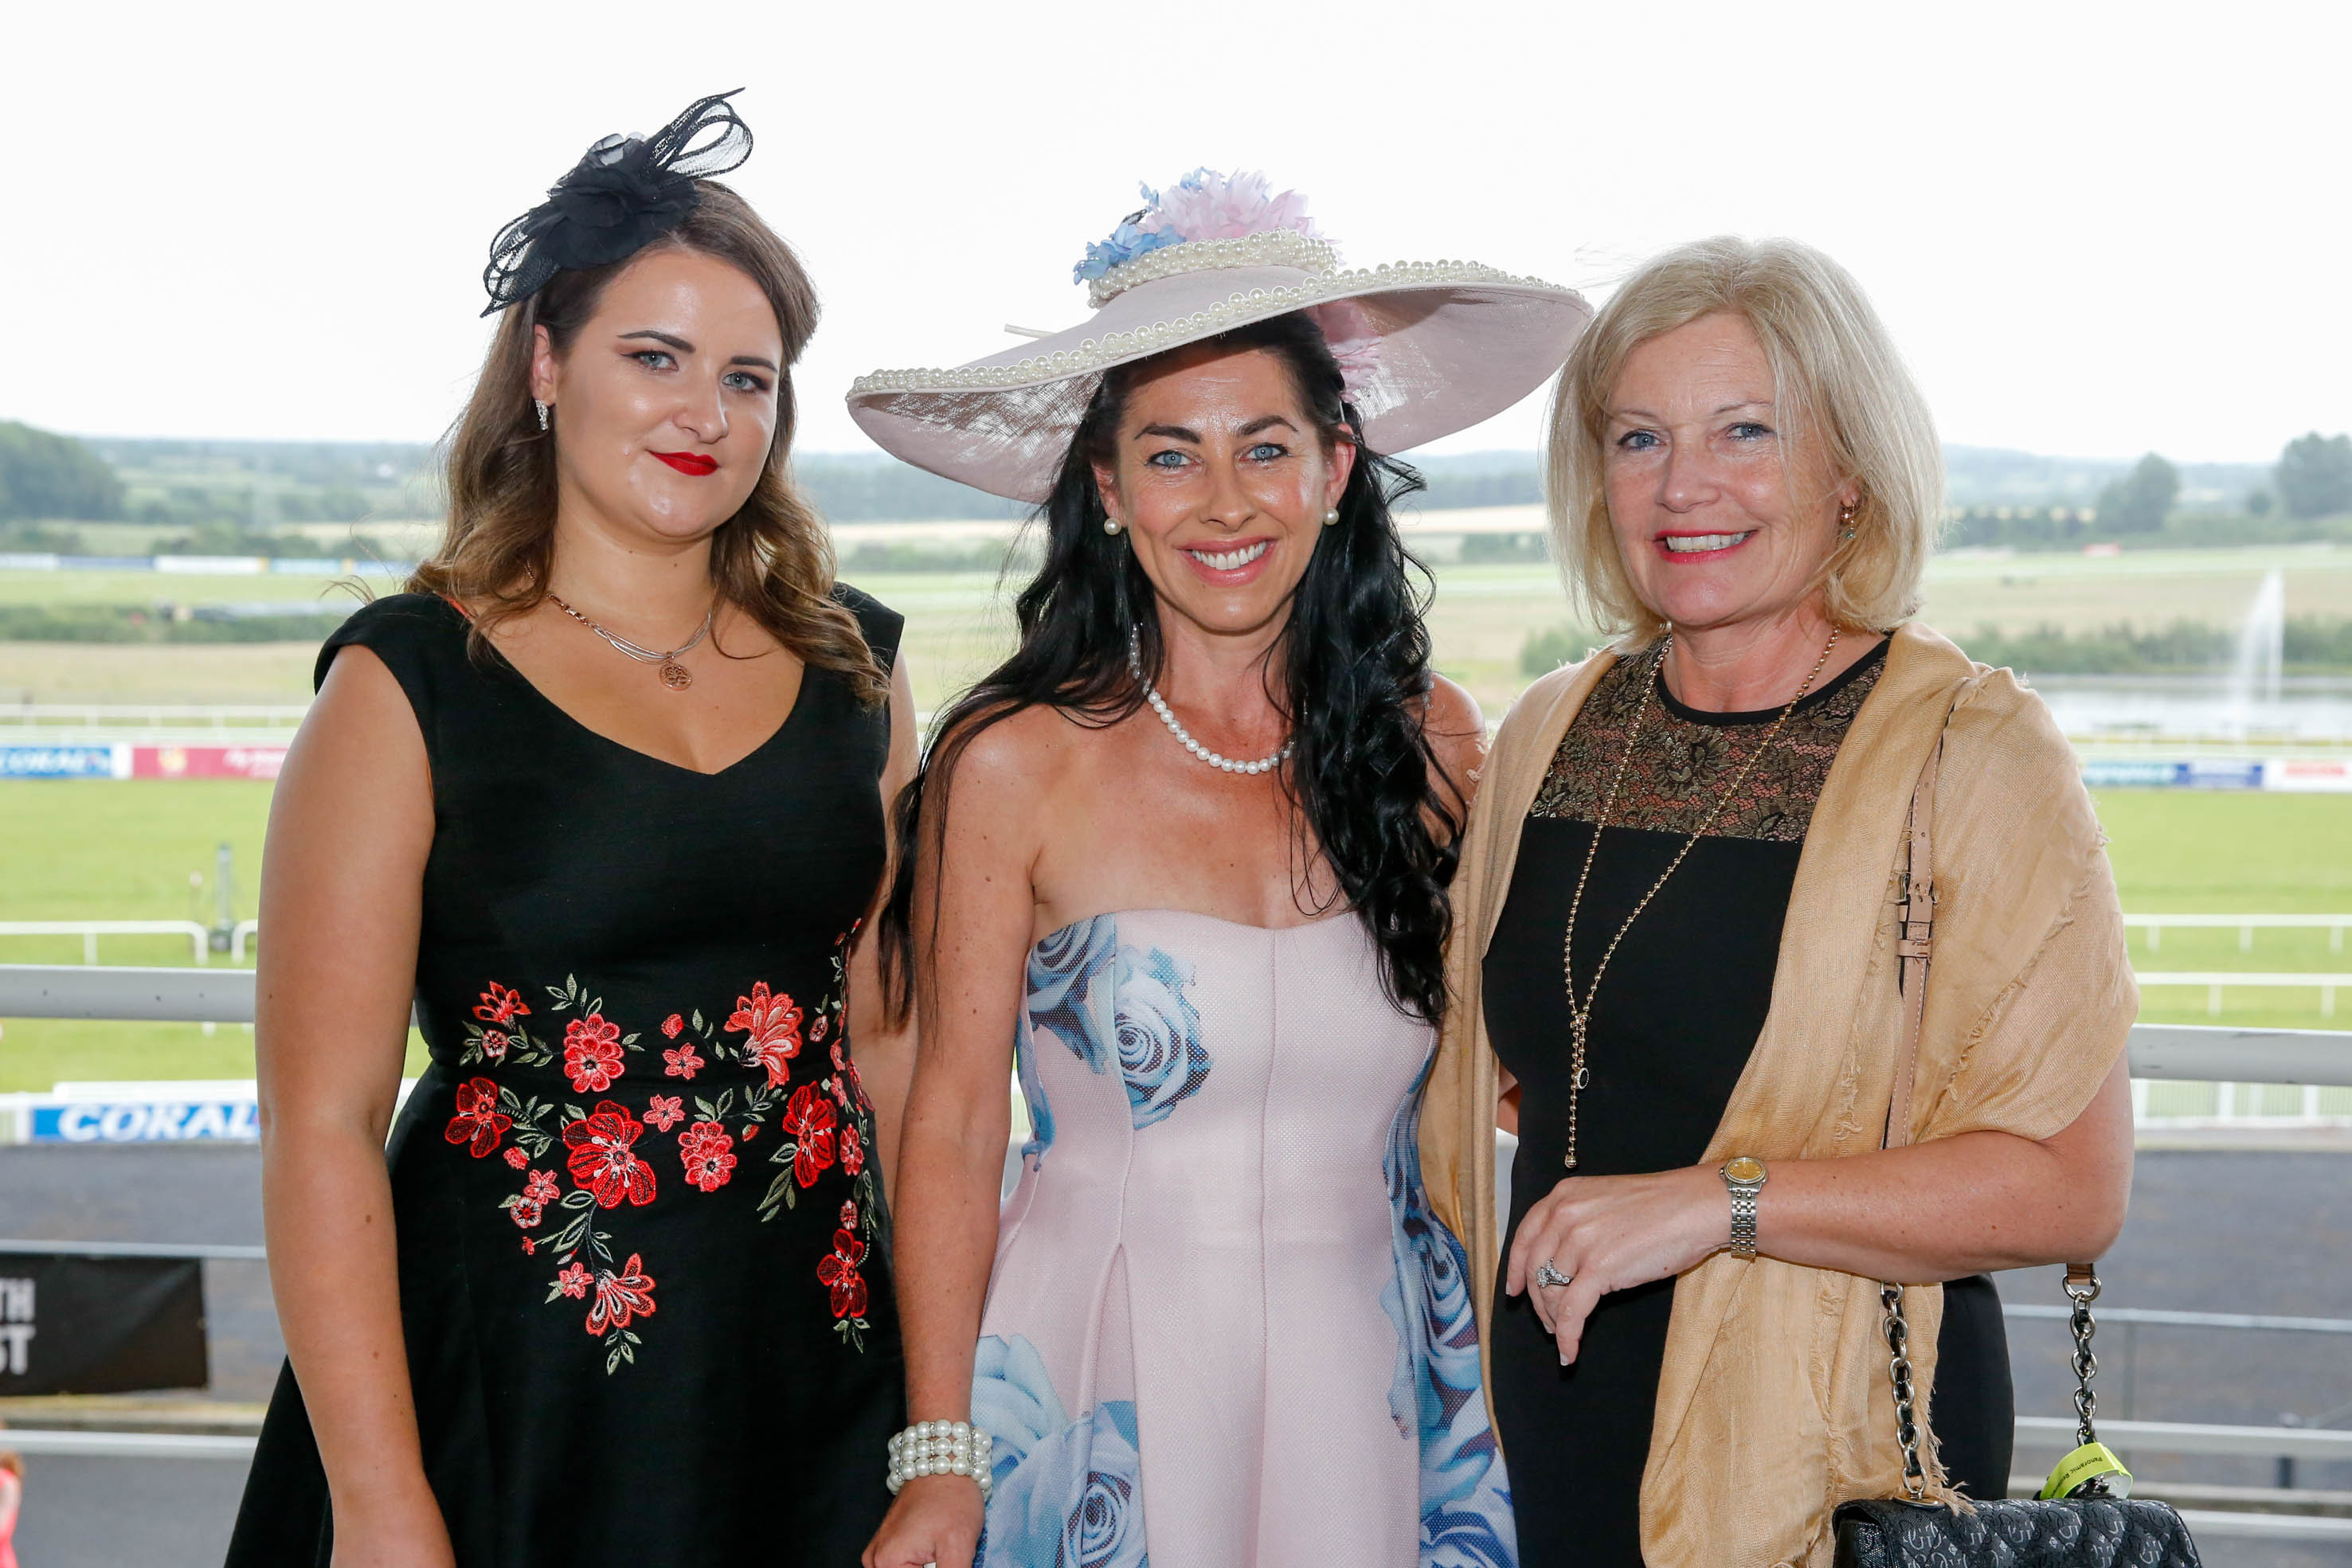 11-6-16 coral.ie Race Day at Limerick Racecourse.Most stylish competition' sponsored by Newbridge Silverware & Neville Jewellers, The Crescent Shopping Centre.Winner was Grace Flynn from Kilcornan pictured here with Roisin Madden, Newbridge Silverware and Anne Quin, Neville Jewellers.Picture: Keith Wiseman